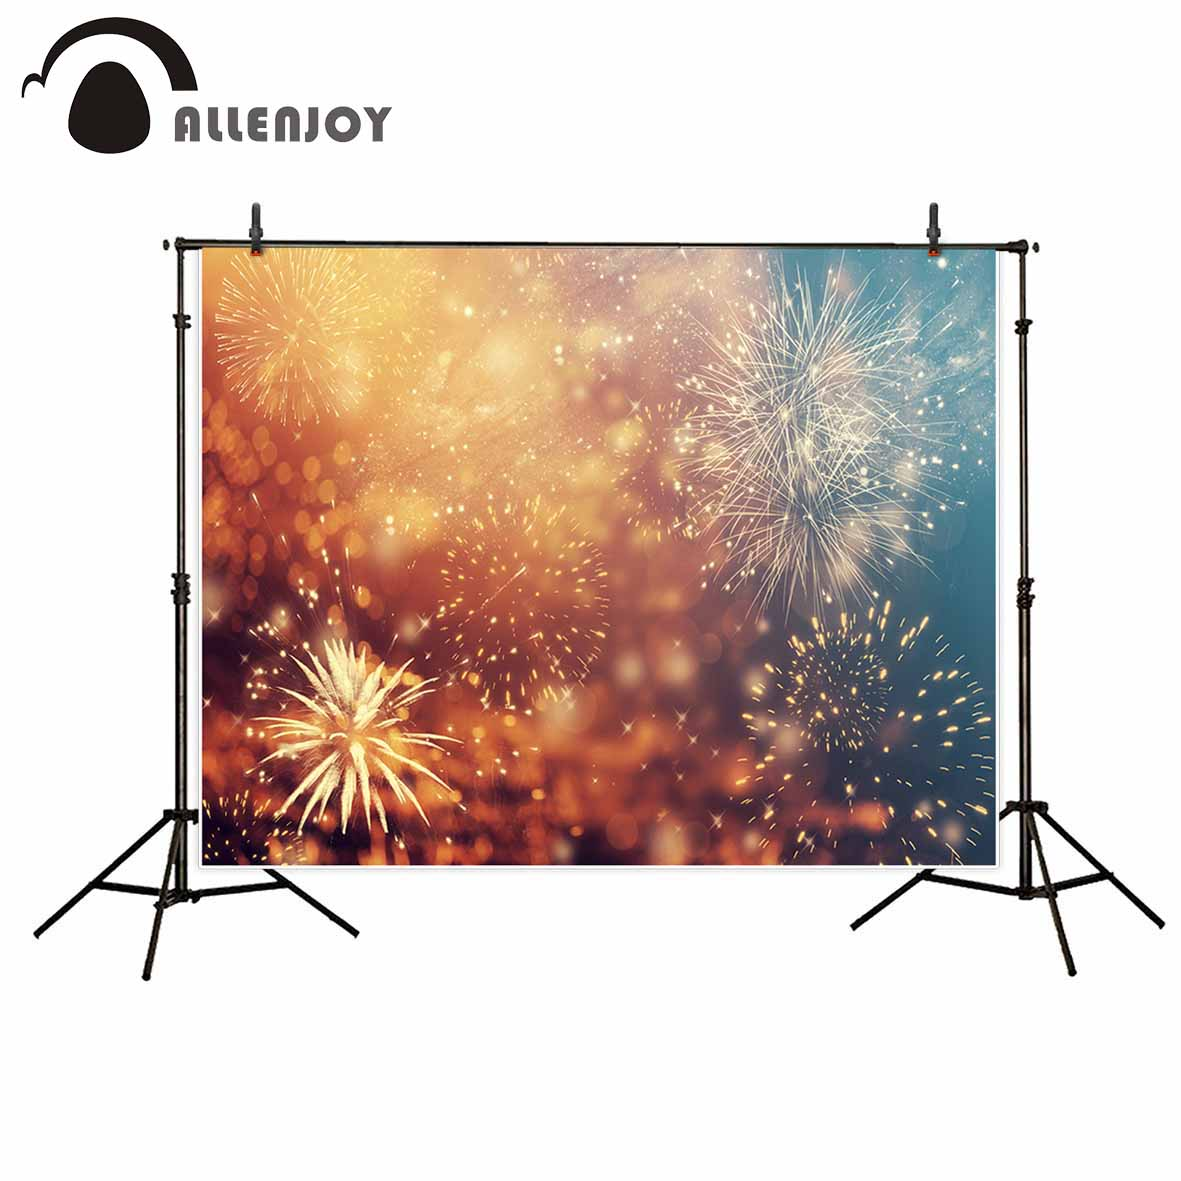 Allenjoy photography backdrop bokeh fireworks new year colorful background photobooth for a photo shoot photo studio printed